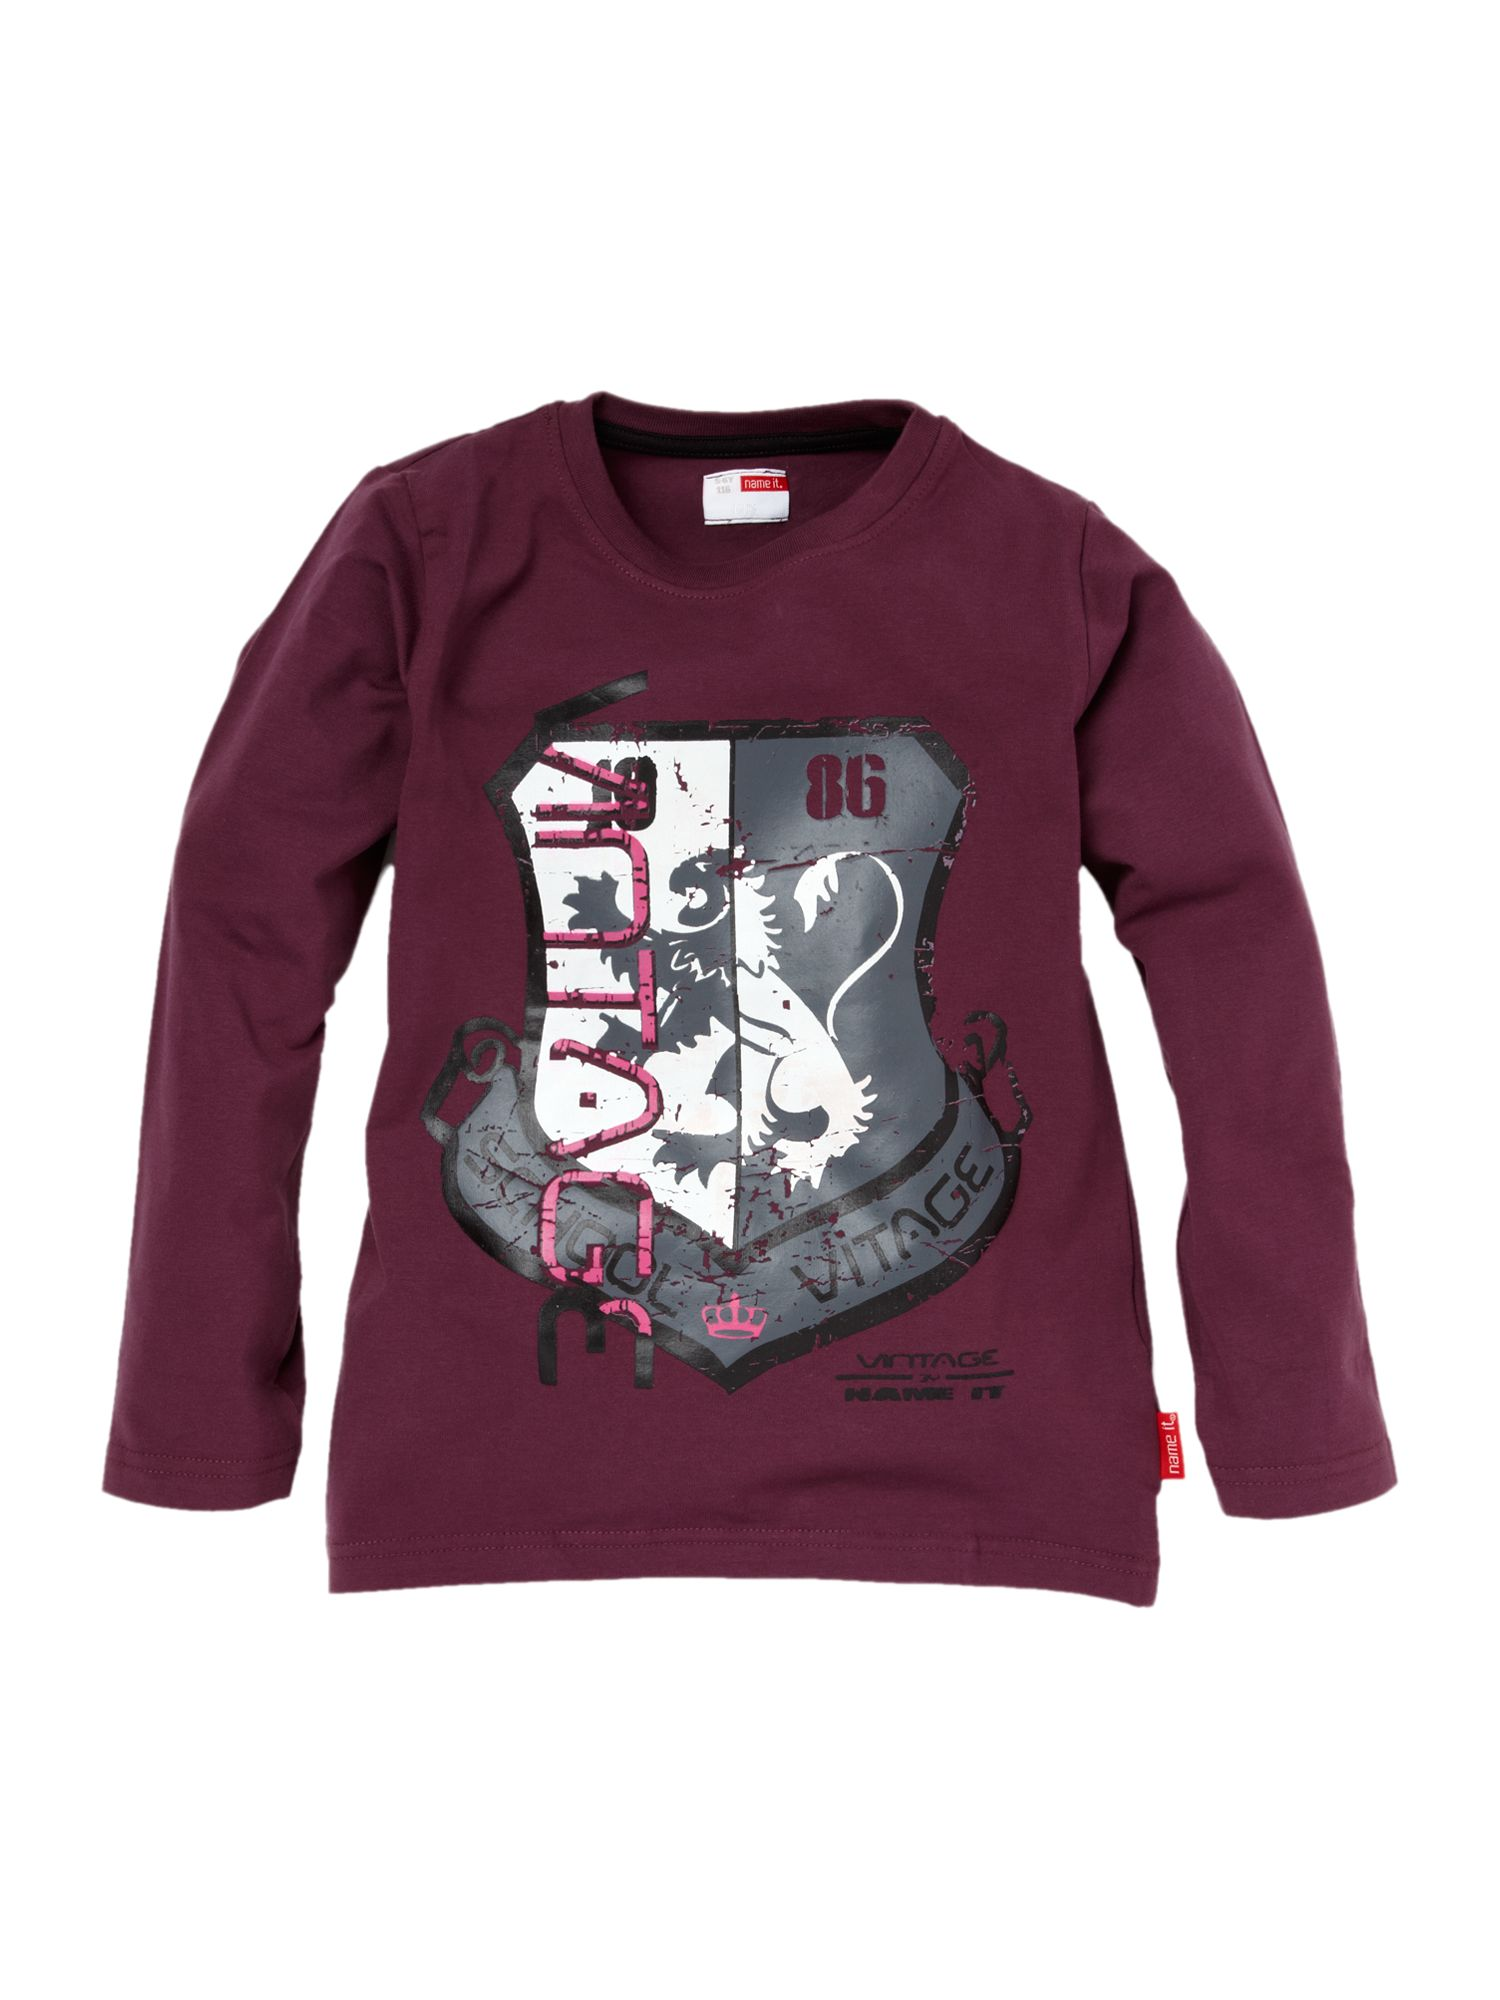 Name it long sleeved shield printed t shirt burgundy for Name printed t shirts online